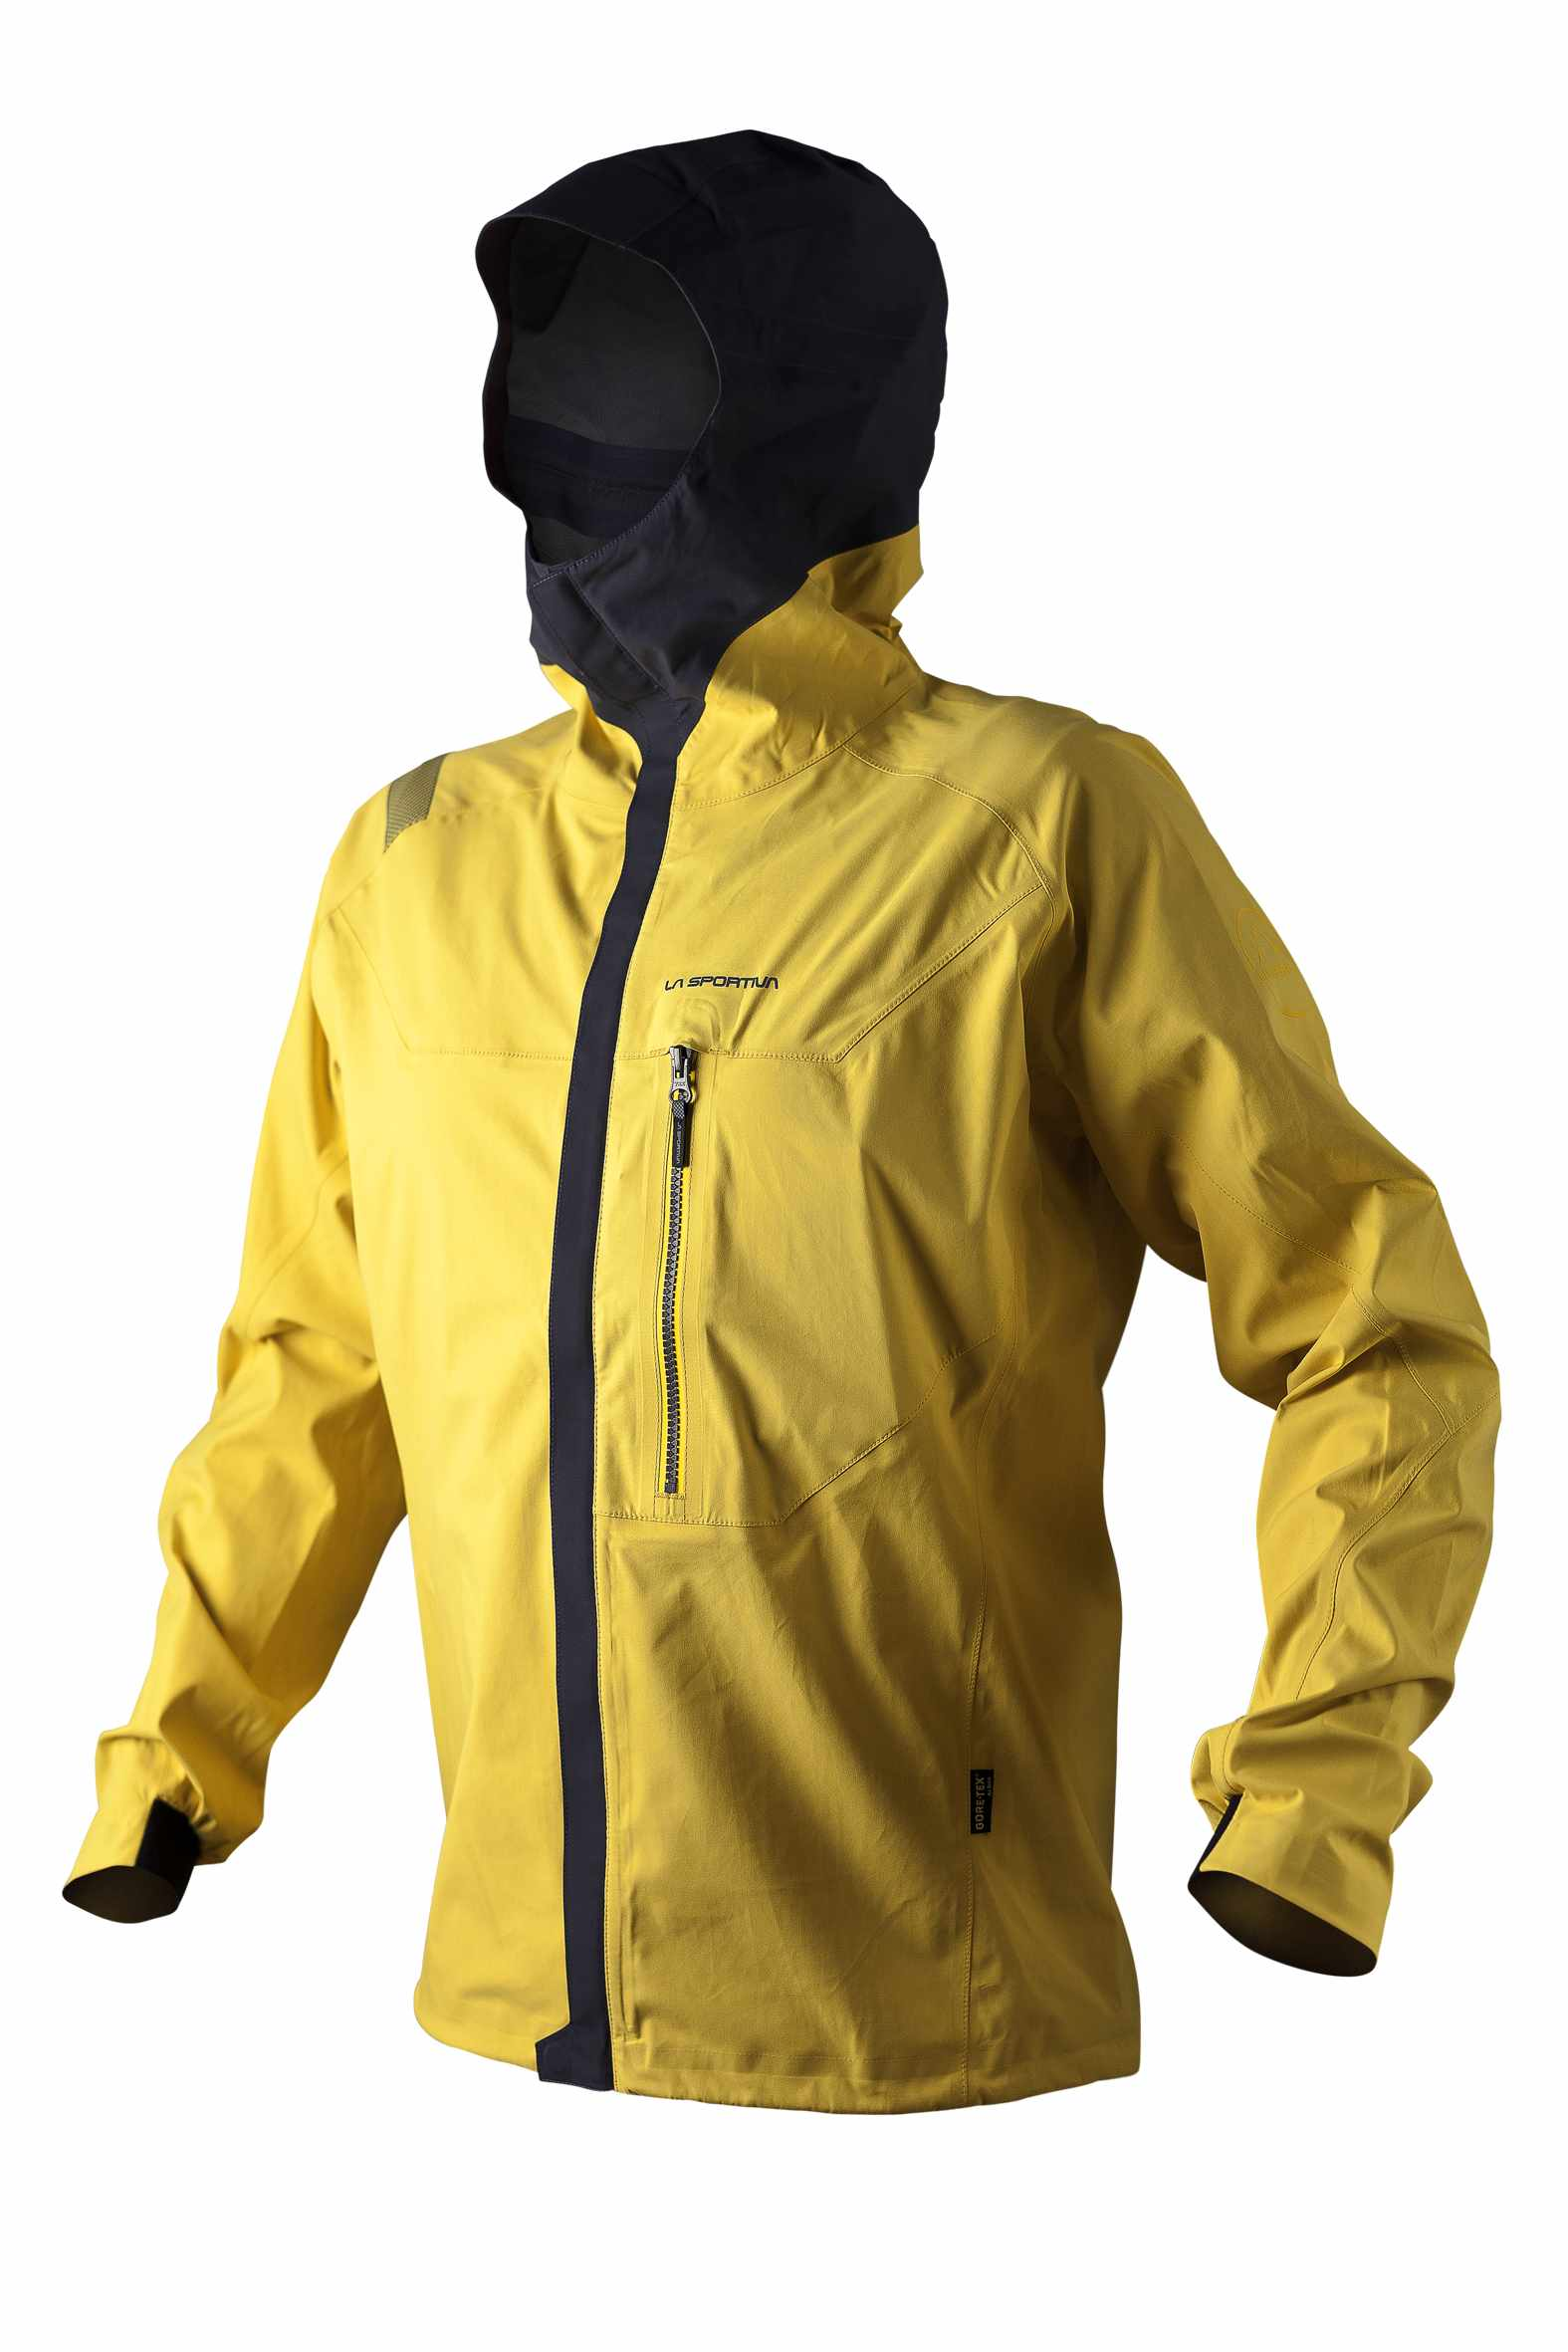 La Sportiva Storm Fighter Jacket